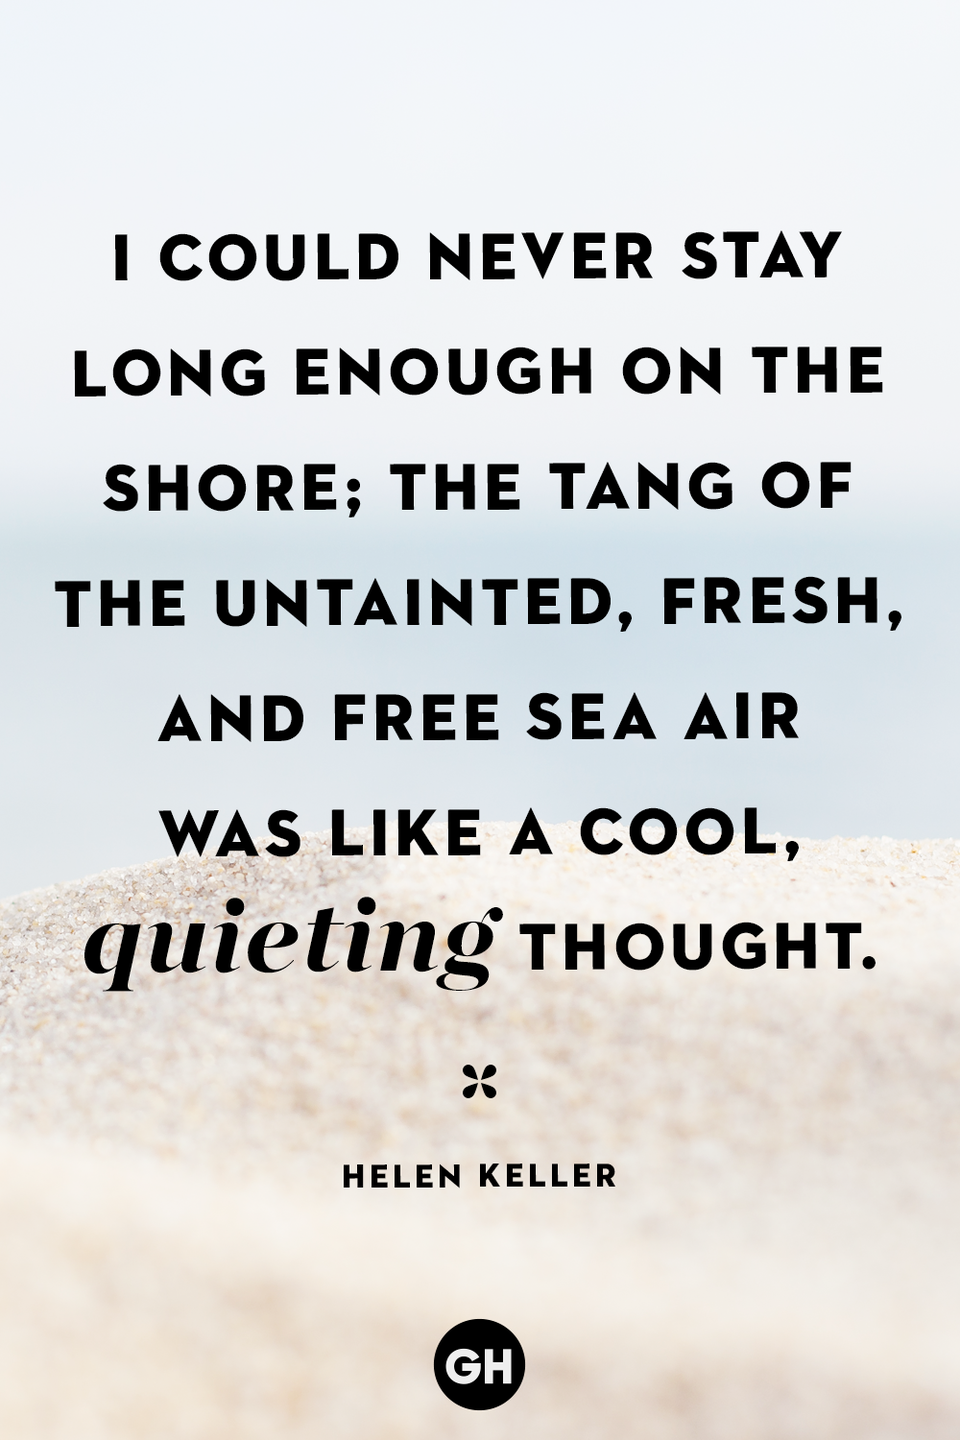 <p>I could never stay long enough on the shore; the tang of the untainted, fresh, and free sea air was like a cool, quieting thought.</p>